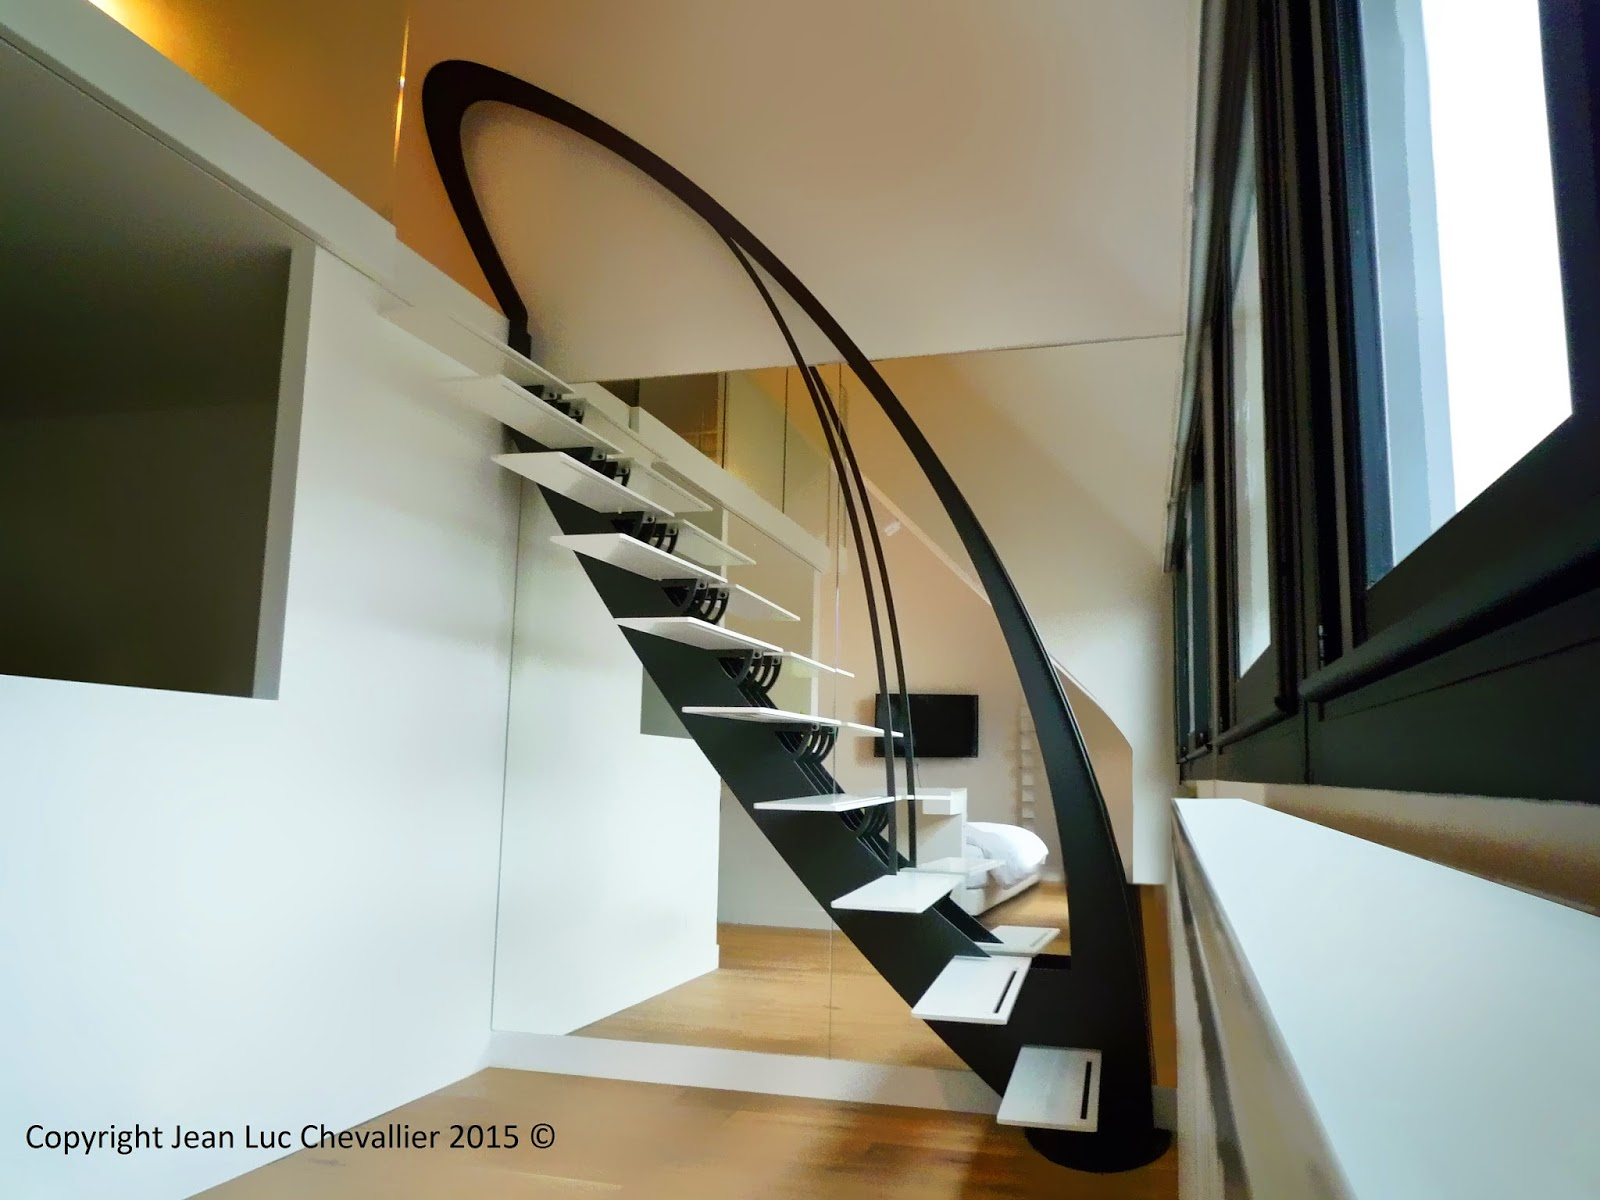 La Stylique: Escalier design suspendu stylisé